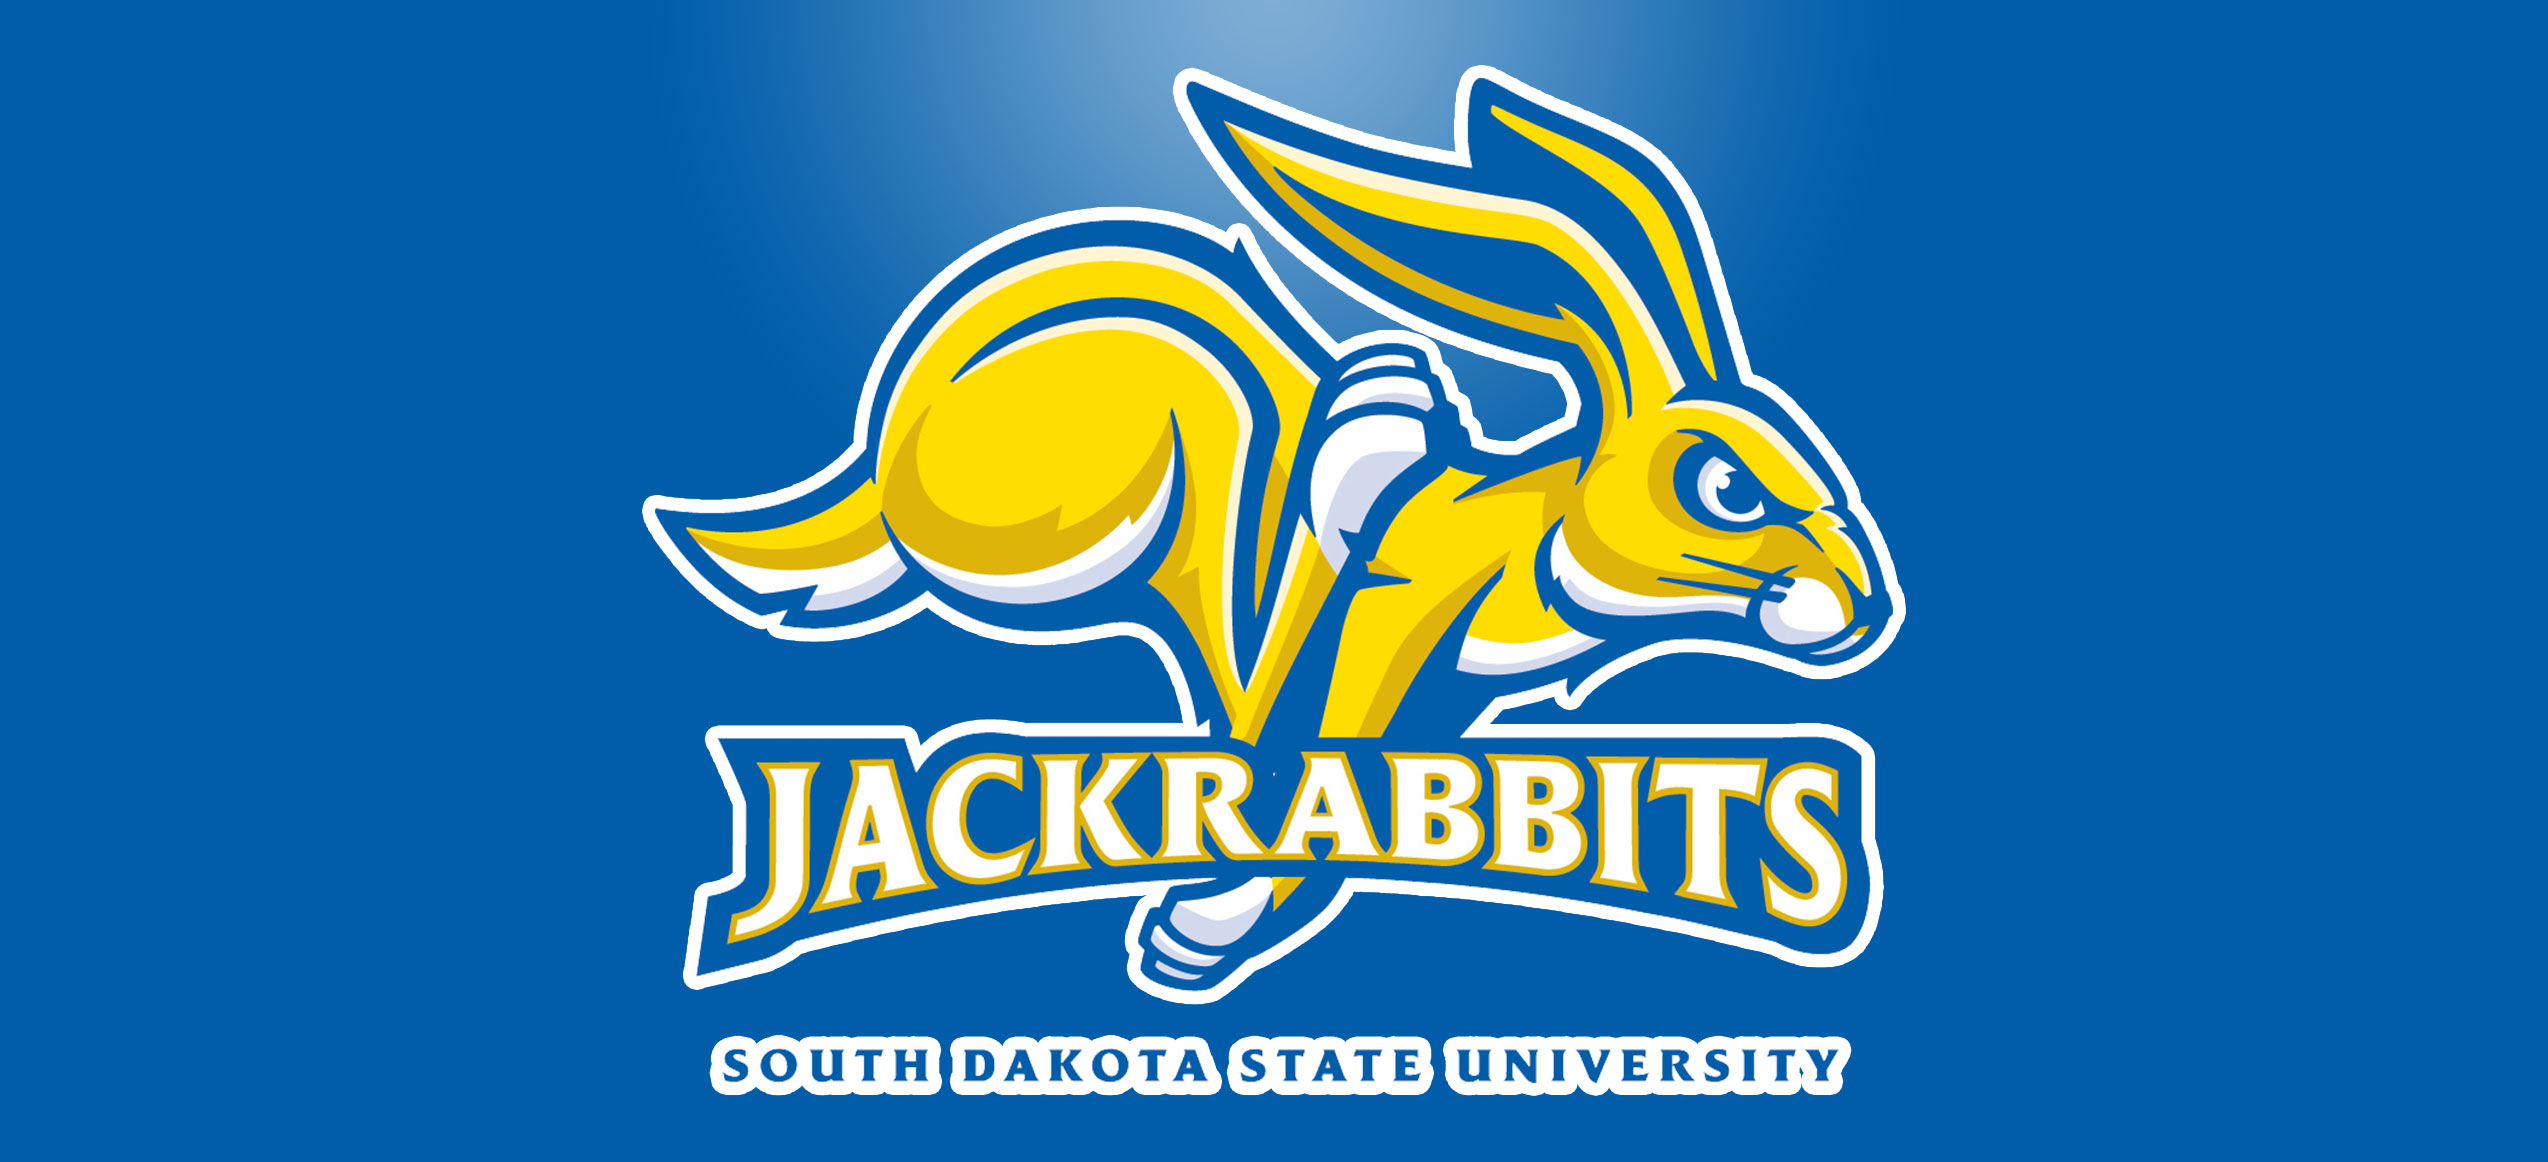 SDSU logo athletics sports jackrabbits